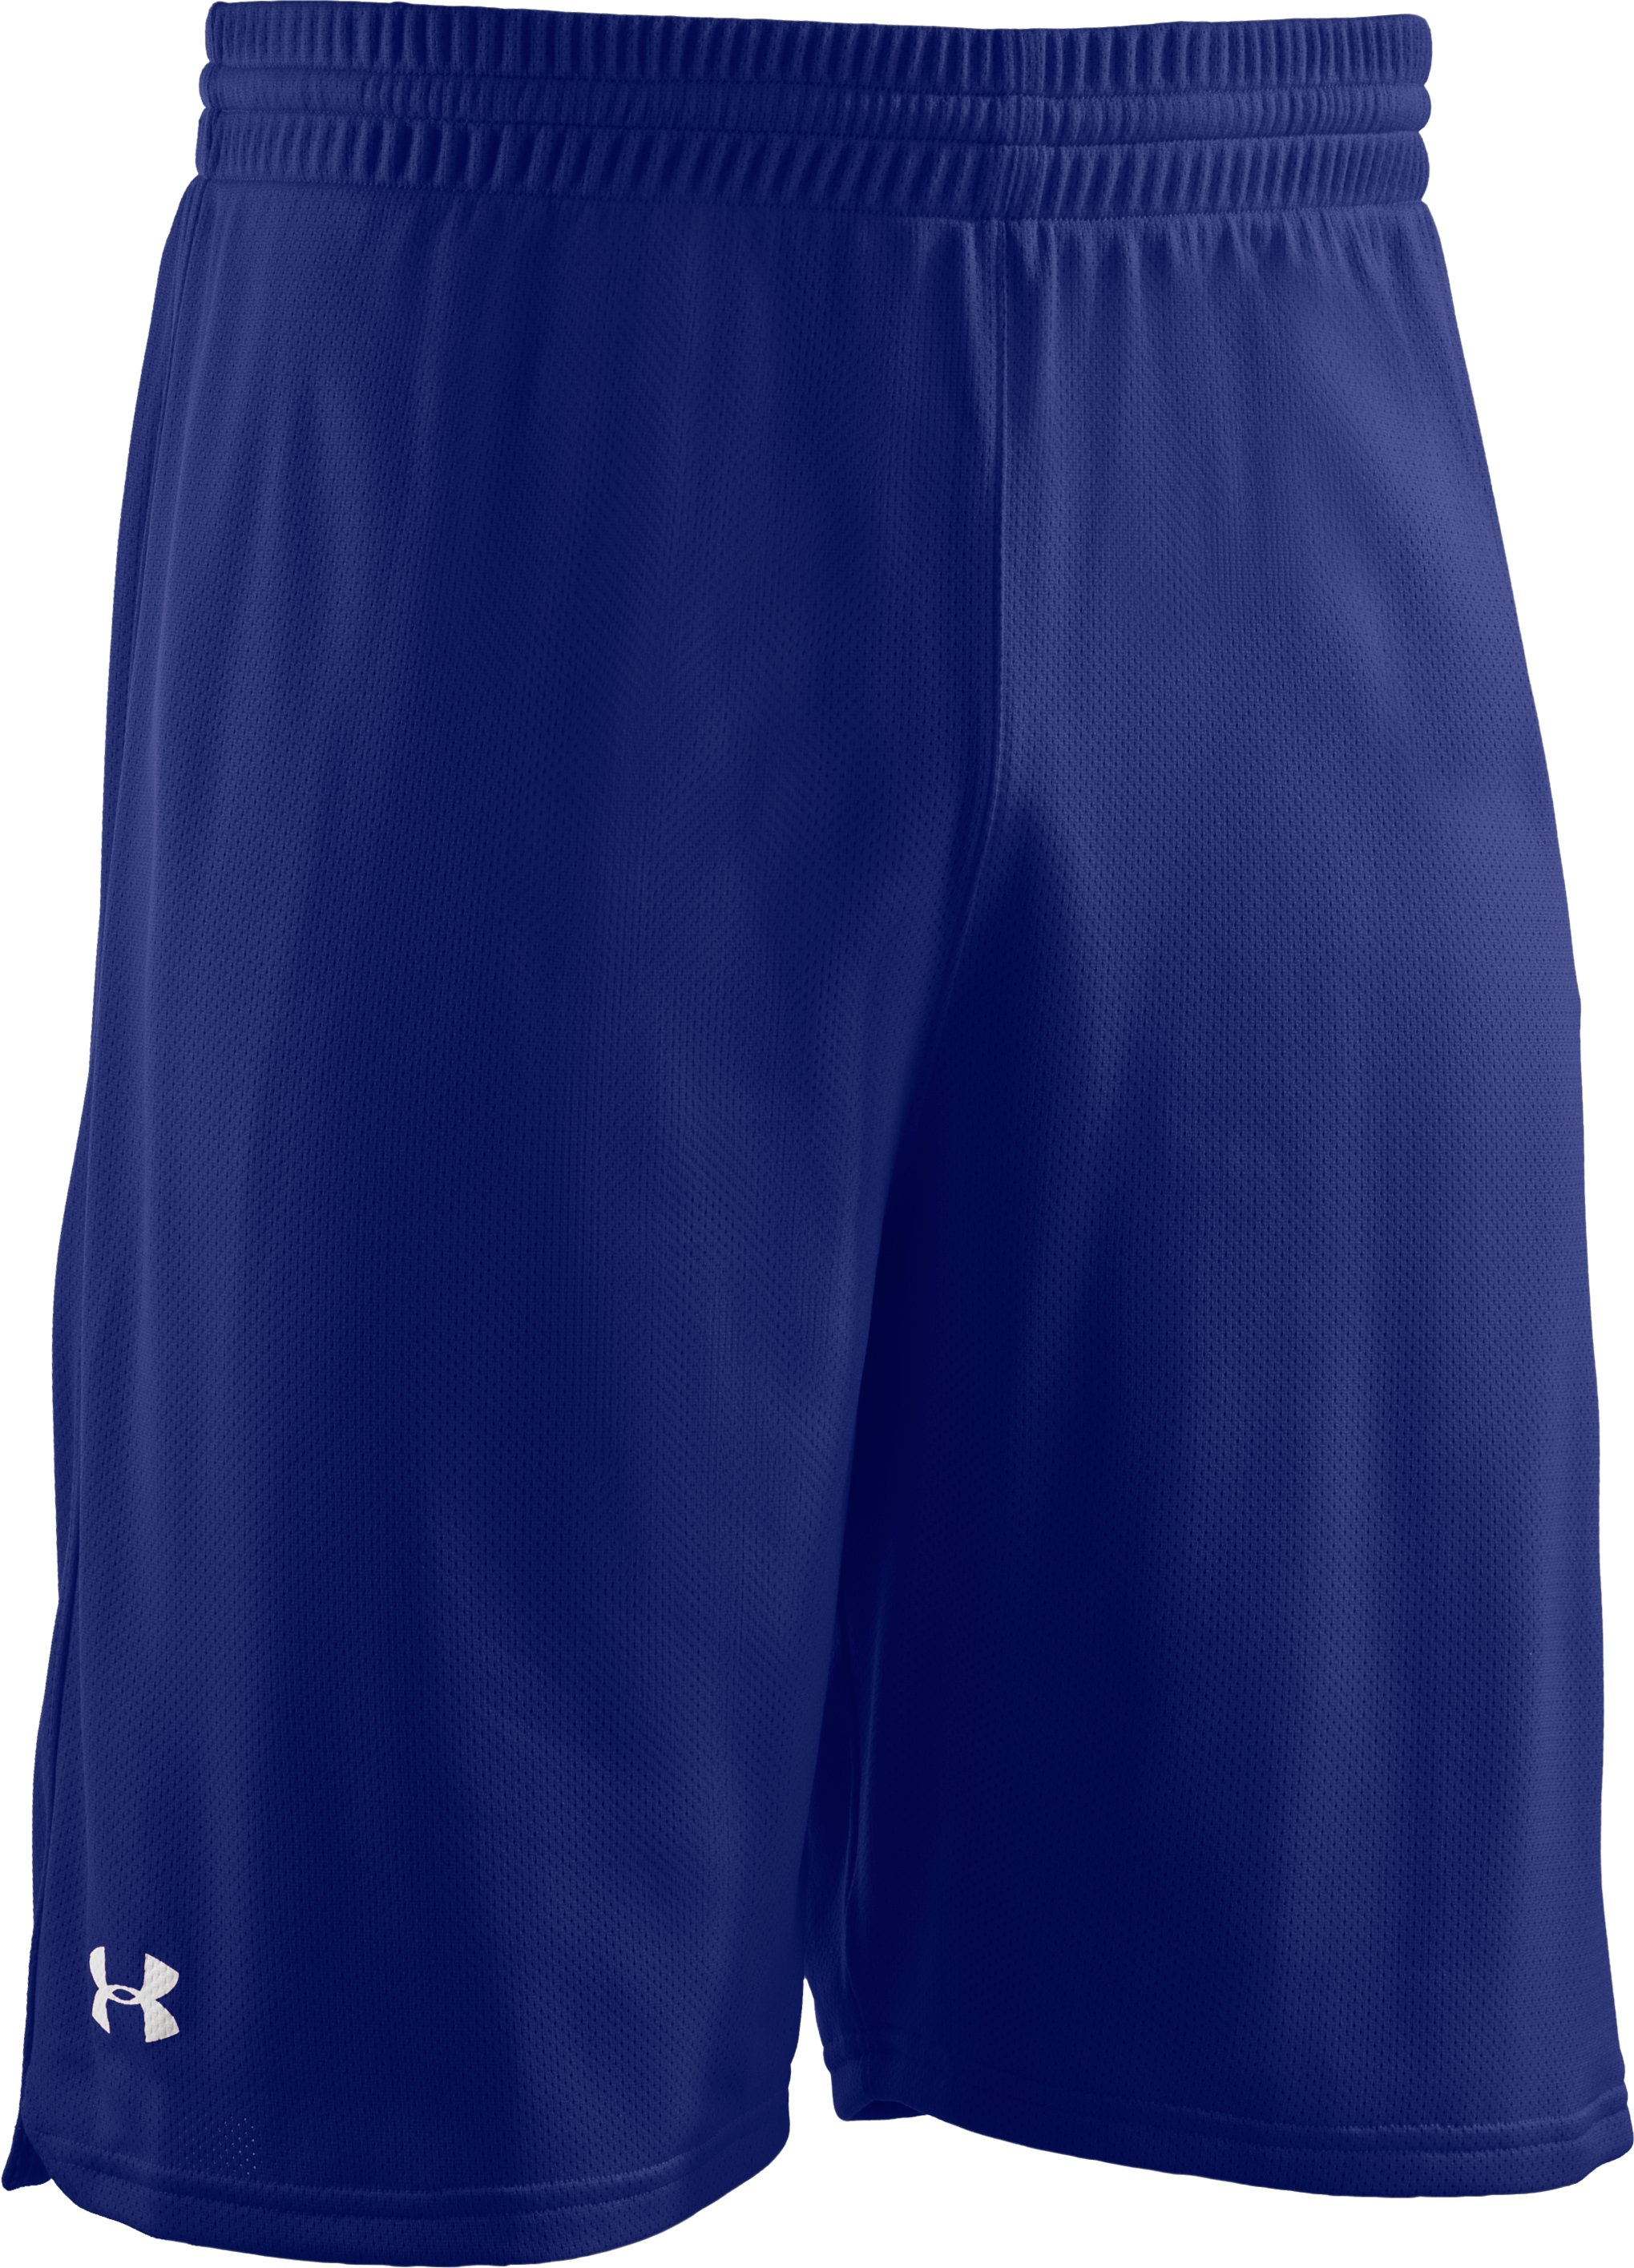 "Men's Dominate 10"" Basketball Shorts, Royal"